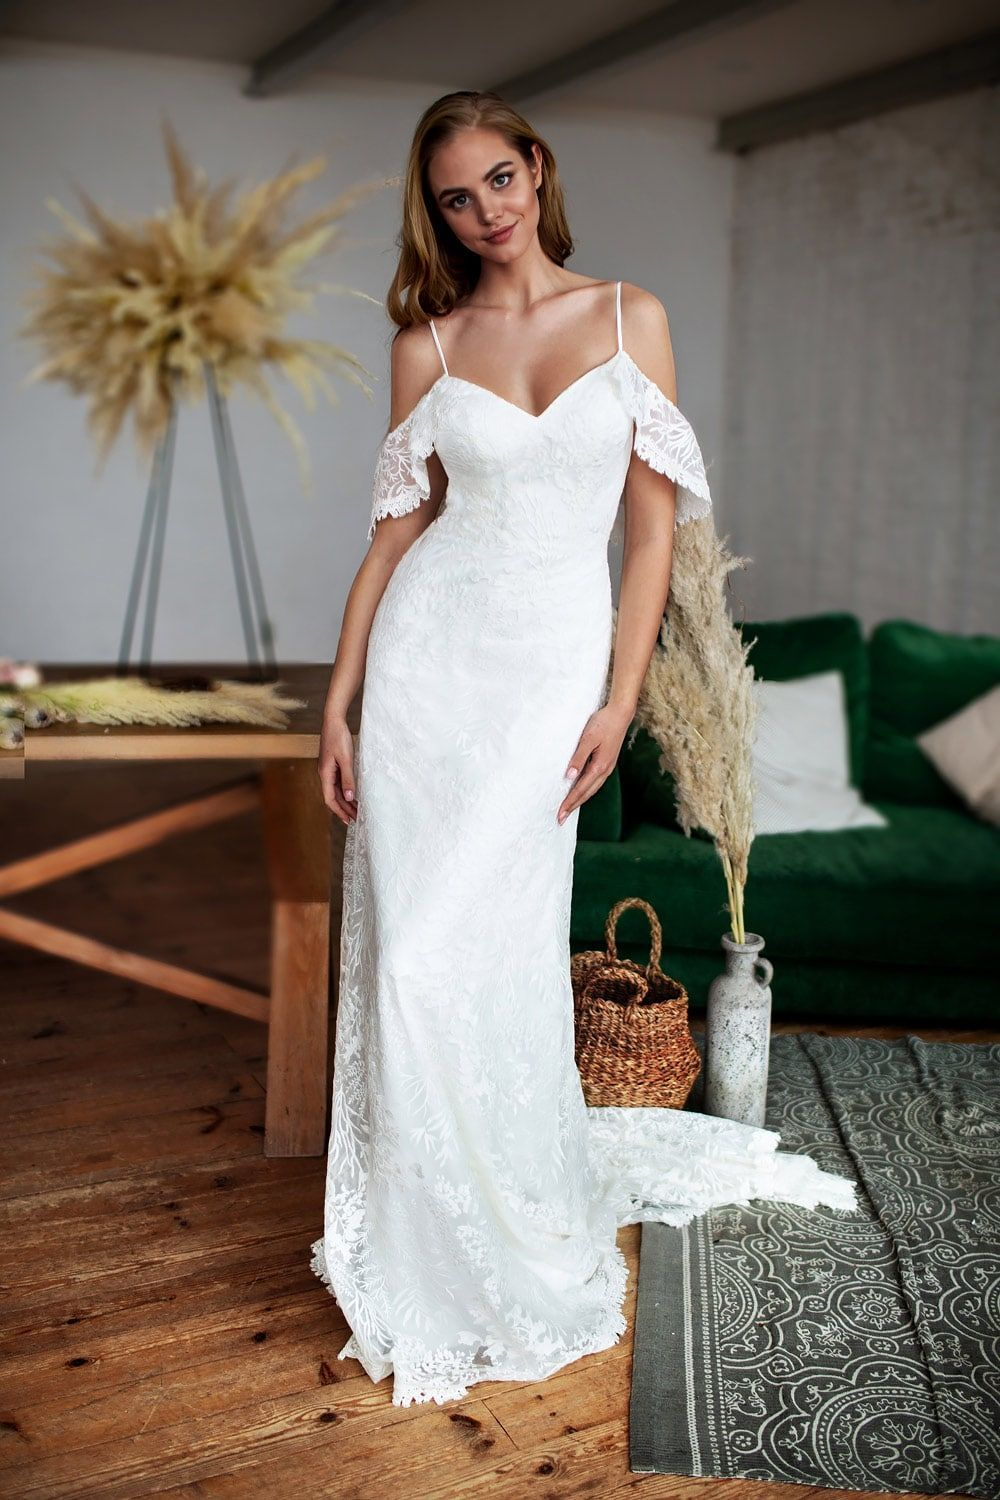 boho wedding dress wedding dress uk boho wedding dress bridal shop near me 73